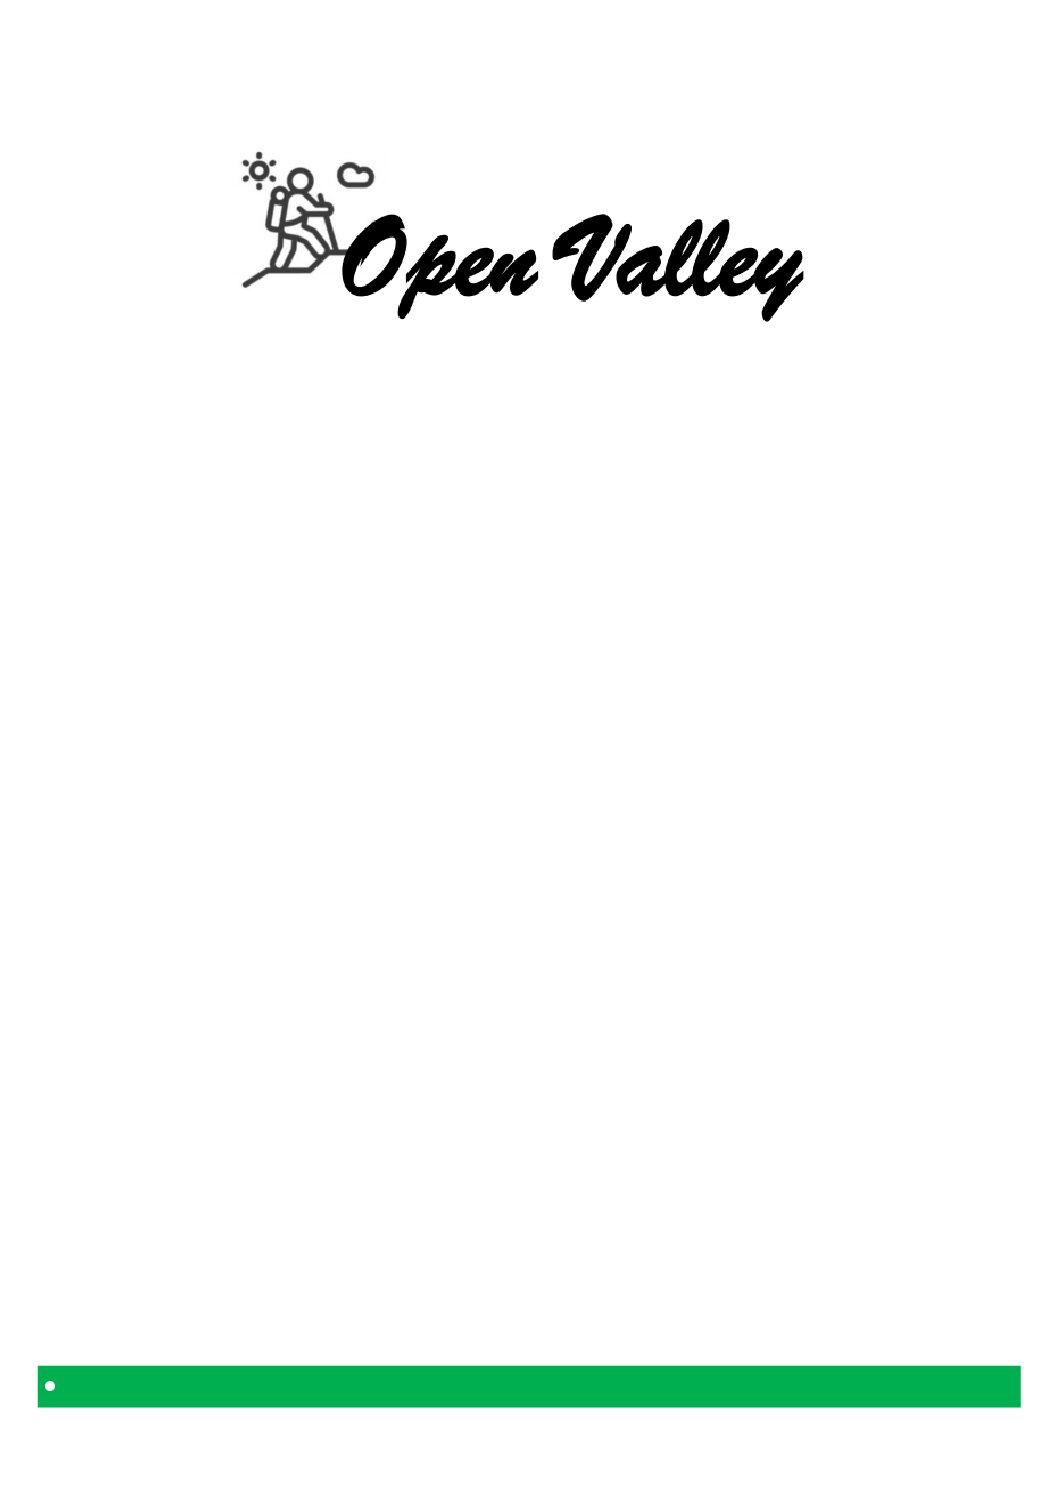 PROGETTO OPEN VALLEY – AL VIA I TEST SIEROLOGICI